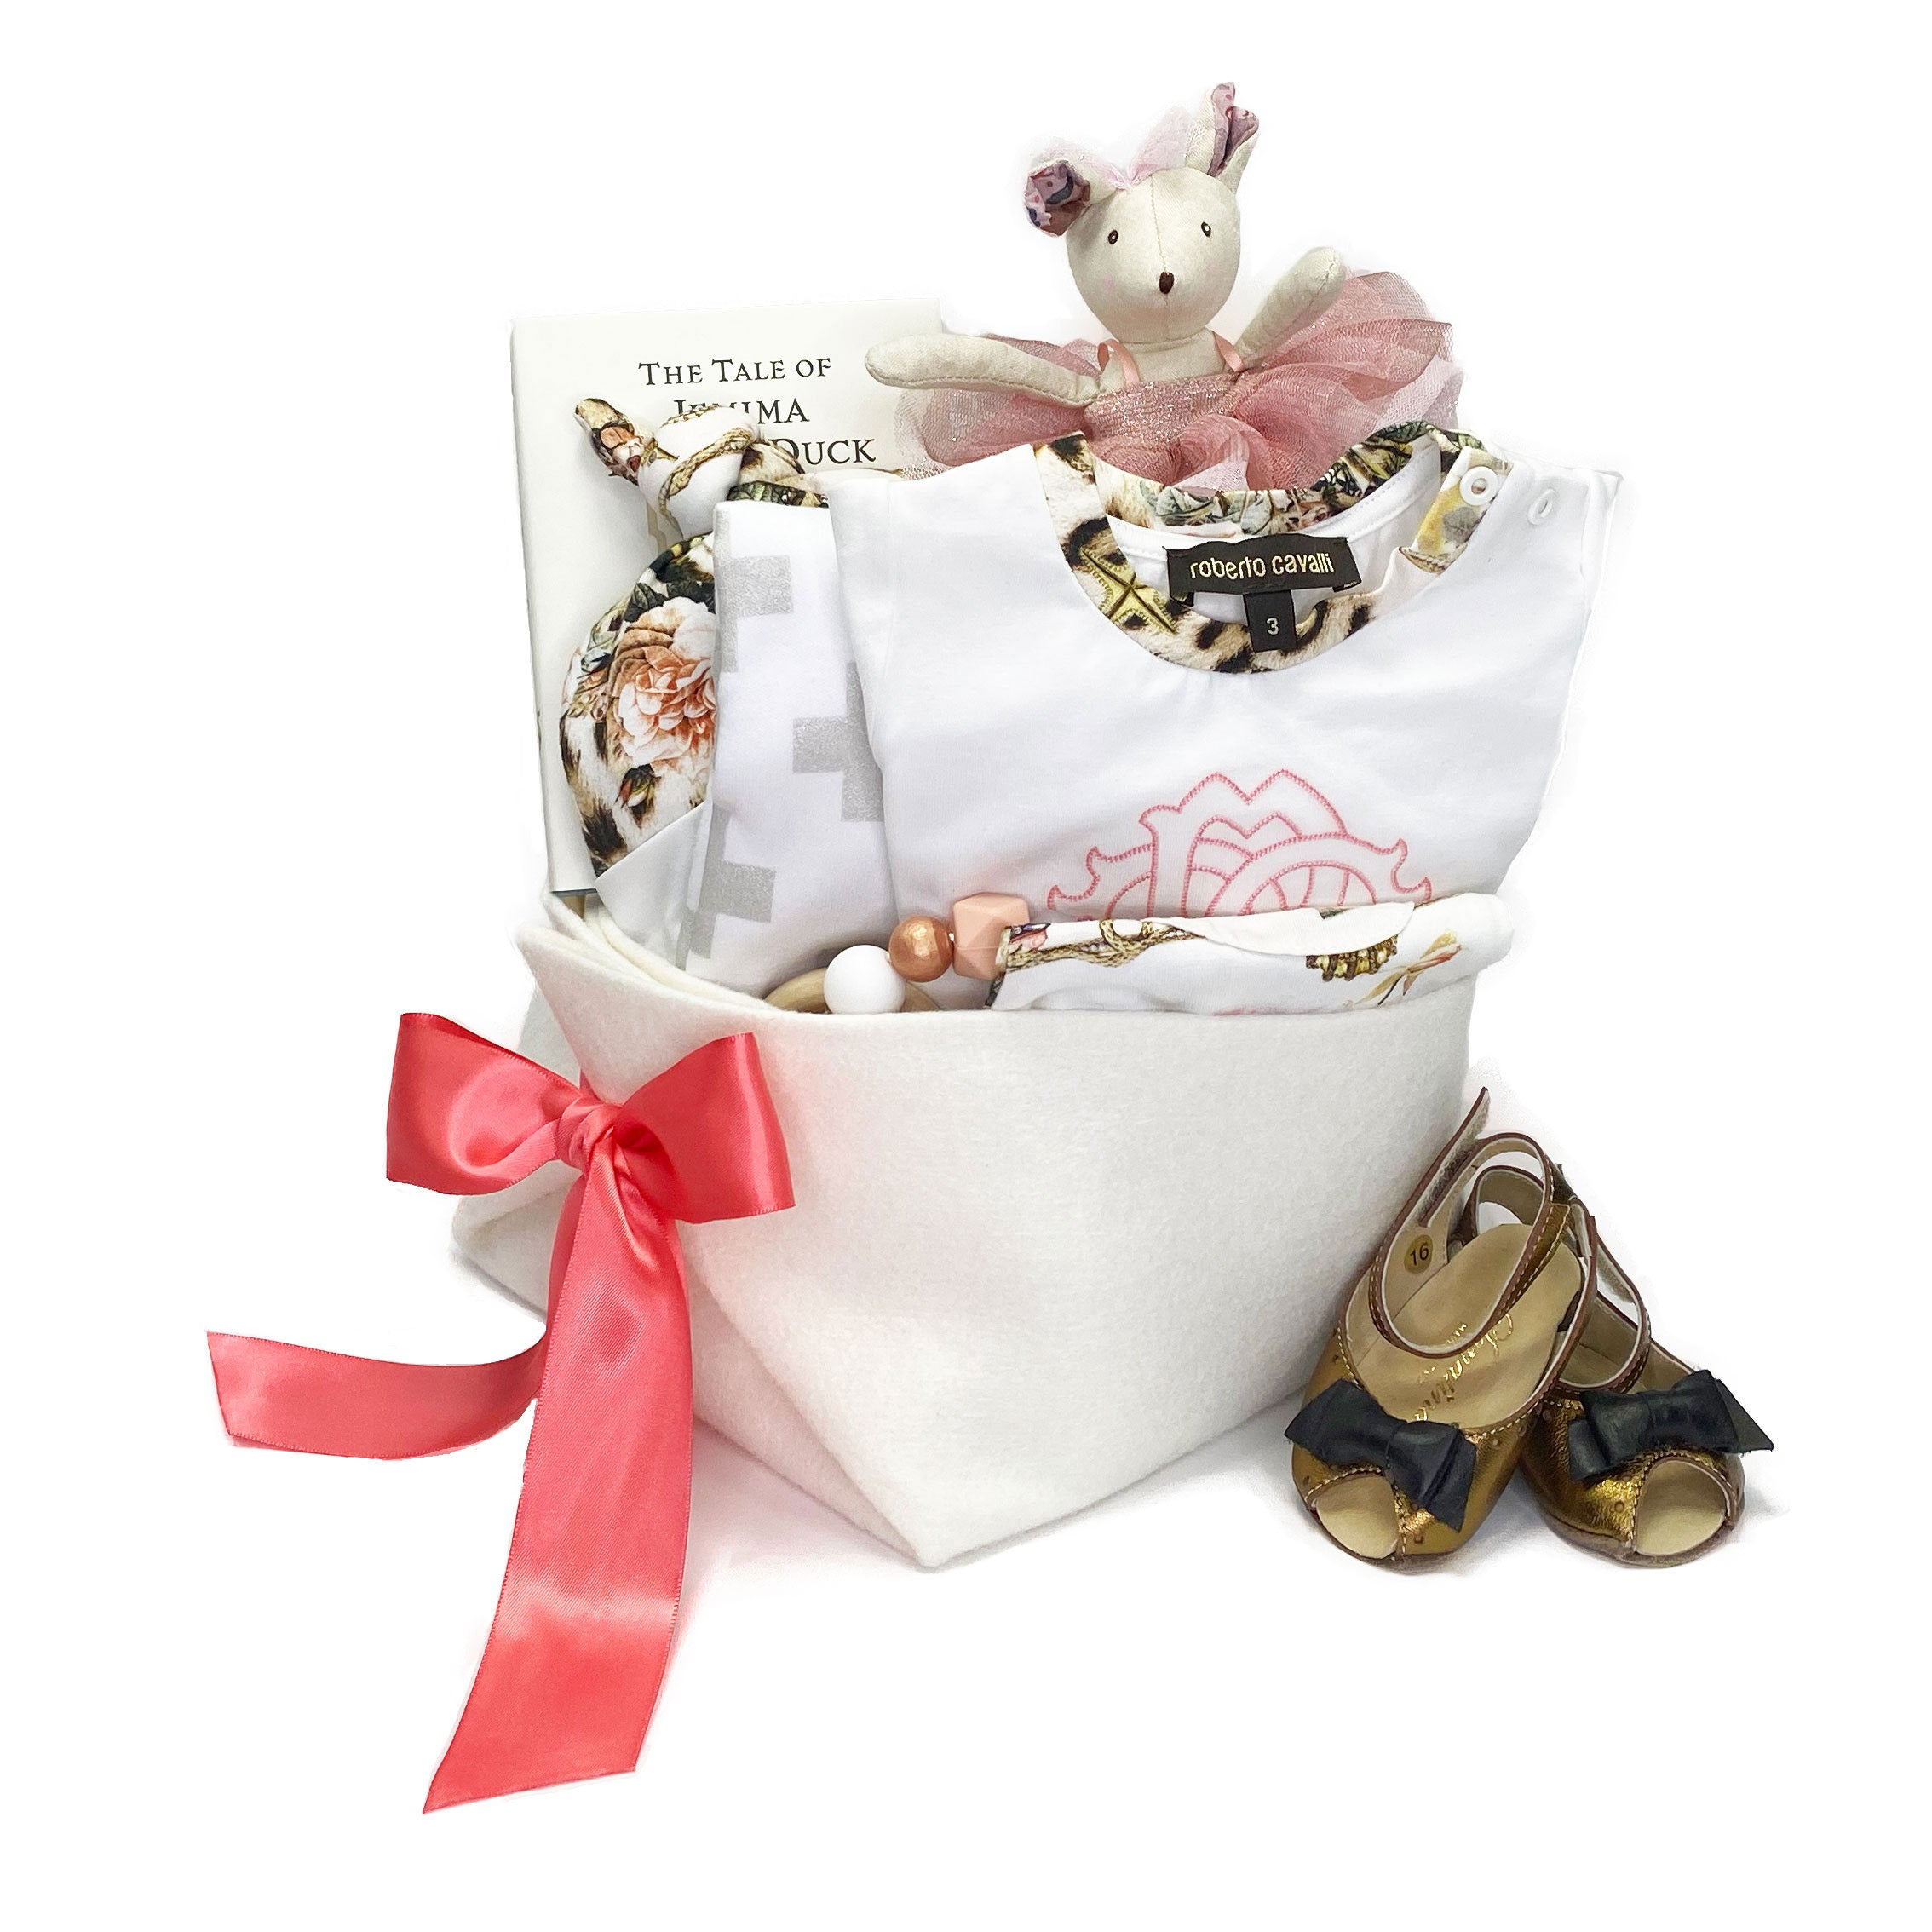 Luxury Baby Girl Gift Basket at Bonjour Baby Baskets featuring Roberto Cavalli